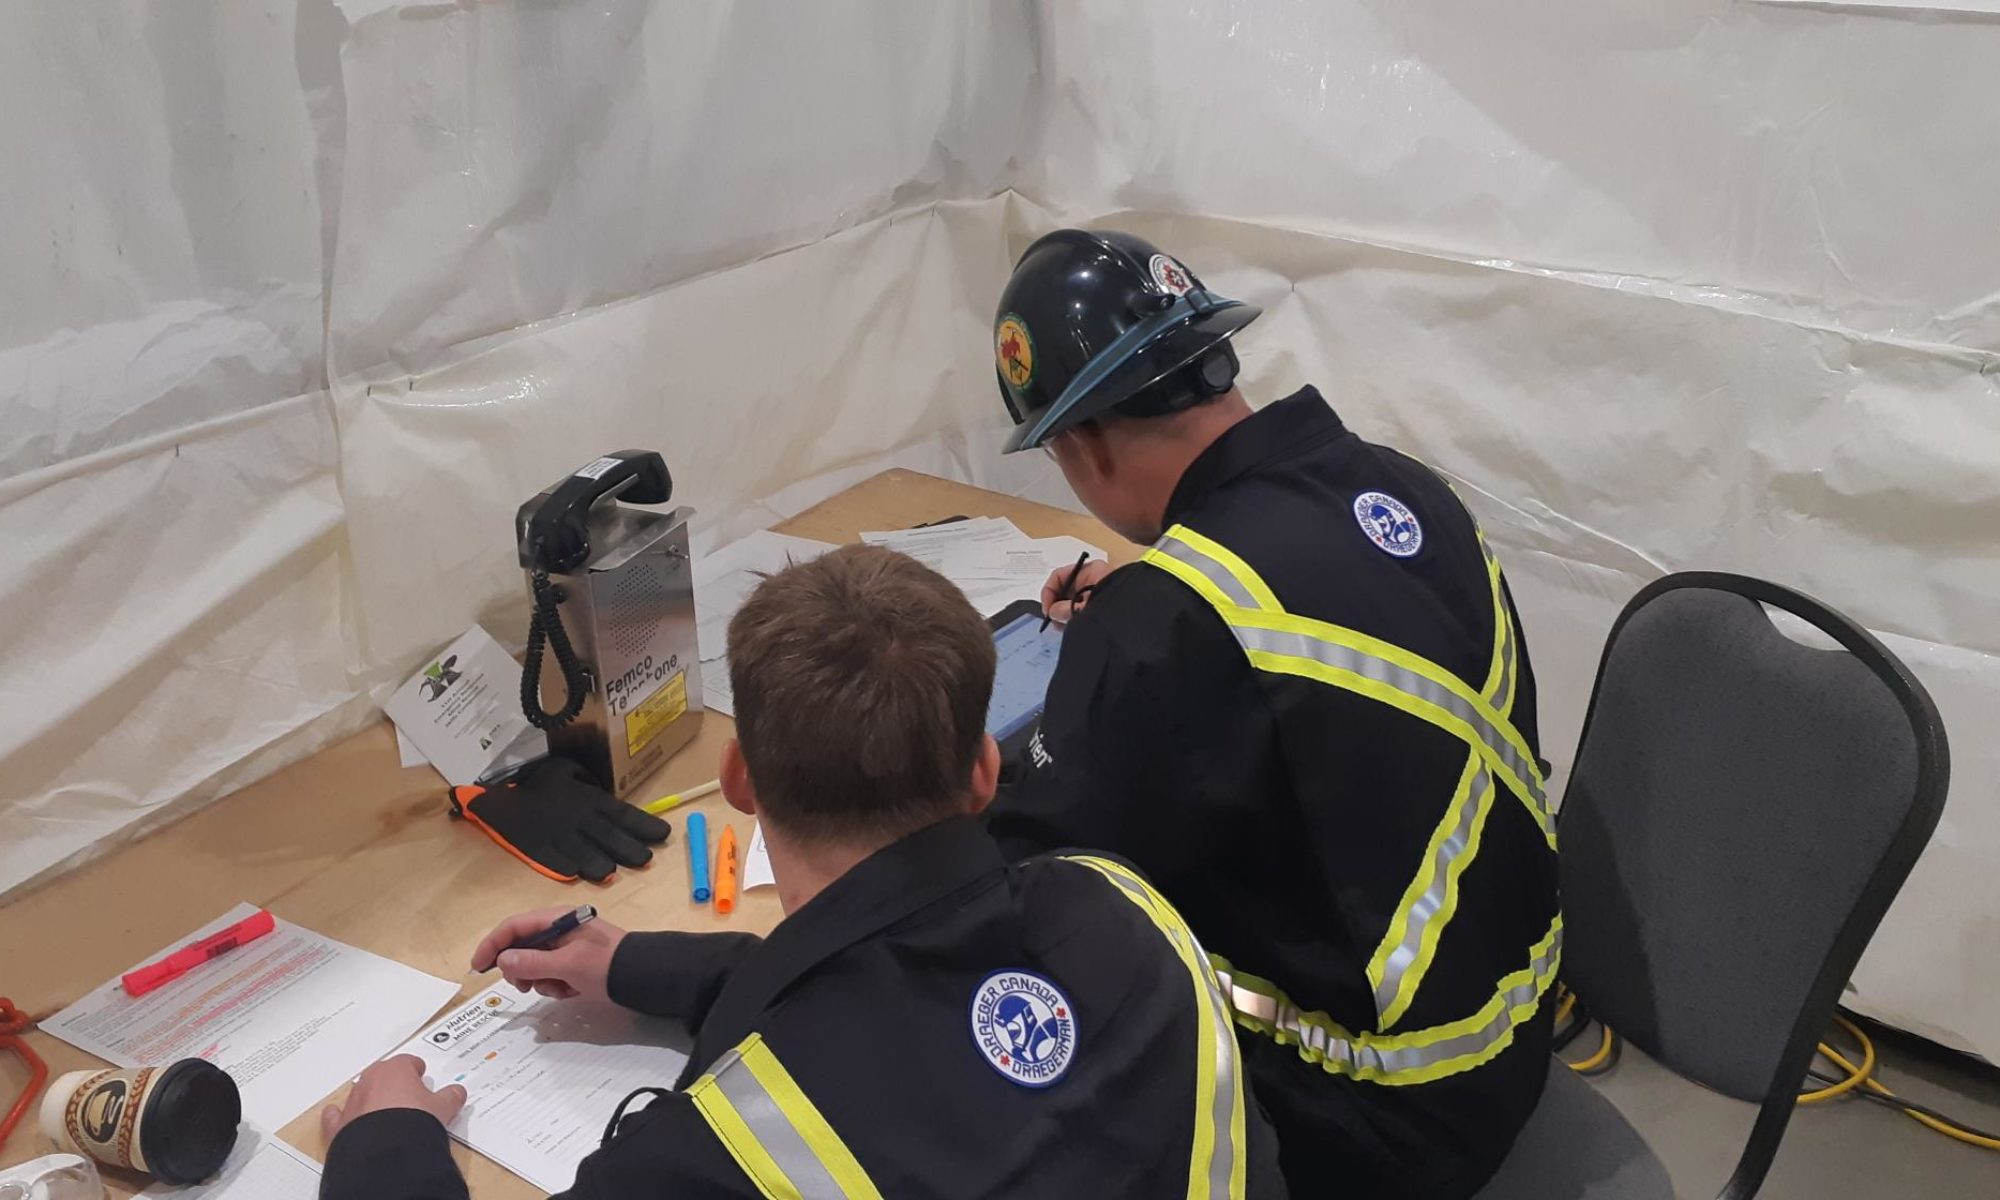 Team members using mine rescue software on a tablet